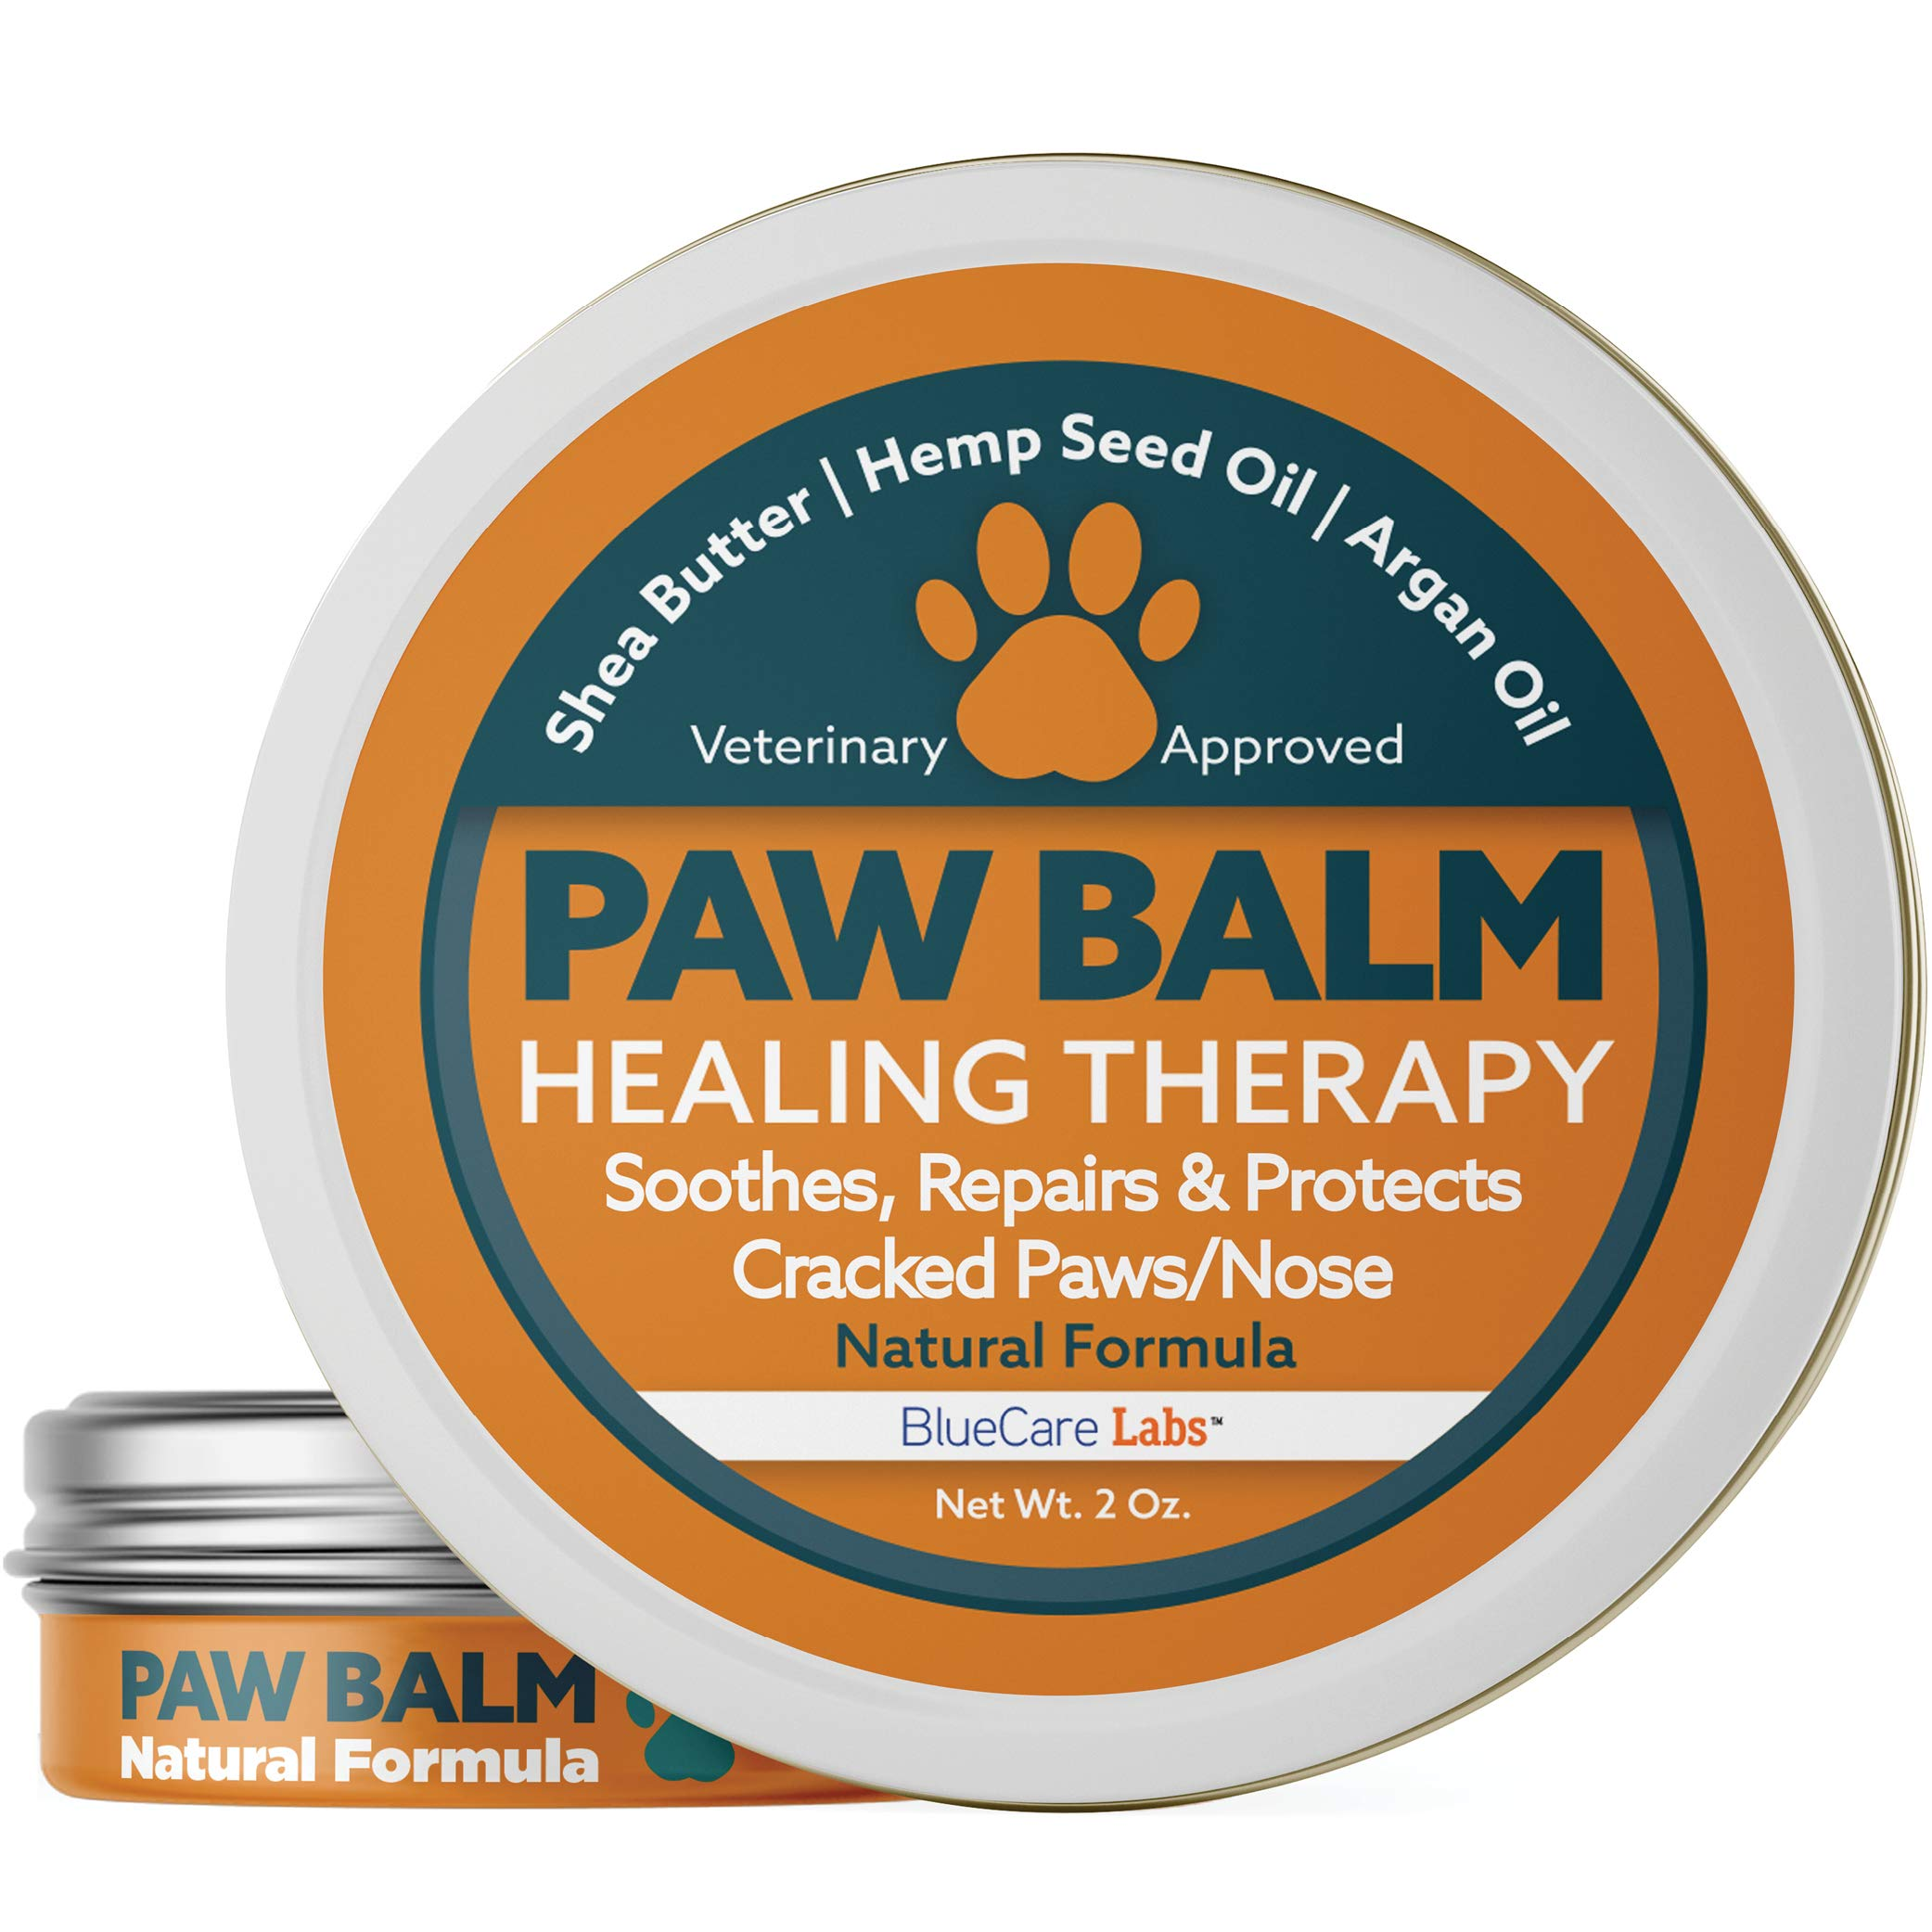 Paw Balm for Dogs and Cats Natural Paw Wax Protection Cracked Paw Repair Paw Moisturiser for Paw Pads Organic Healing Balm for Dog Paws Protects Dry and Chapped Paws Nose Feet Paw Care Made in the USA